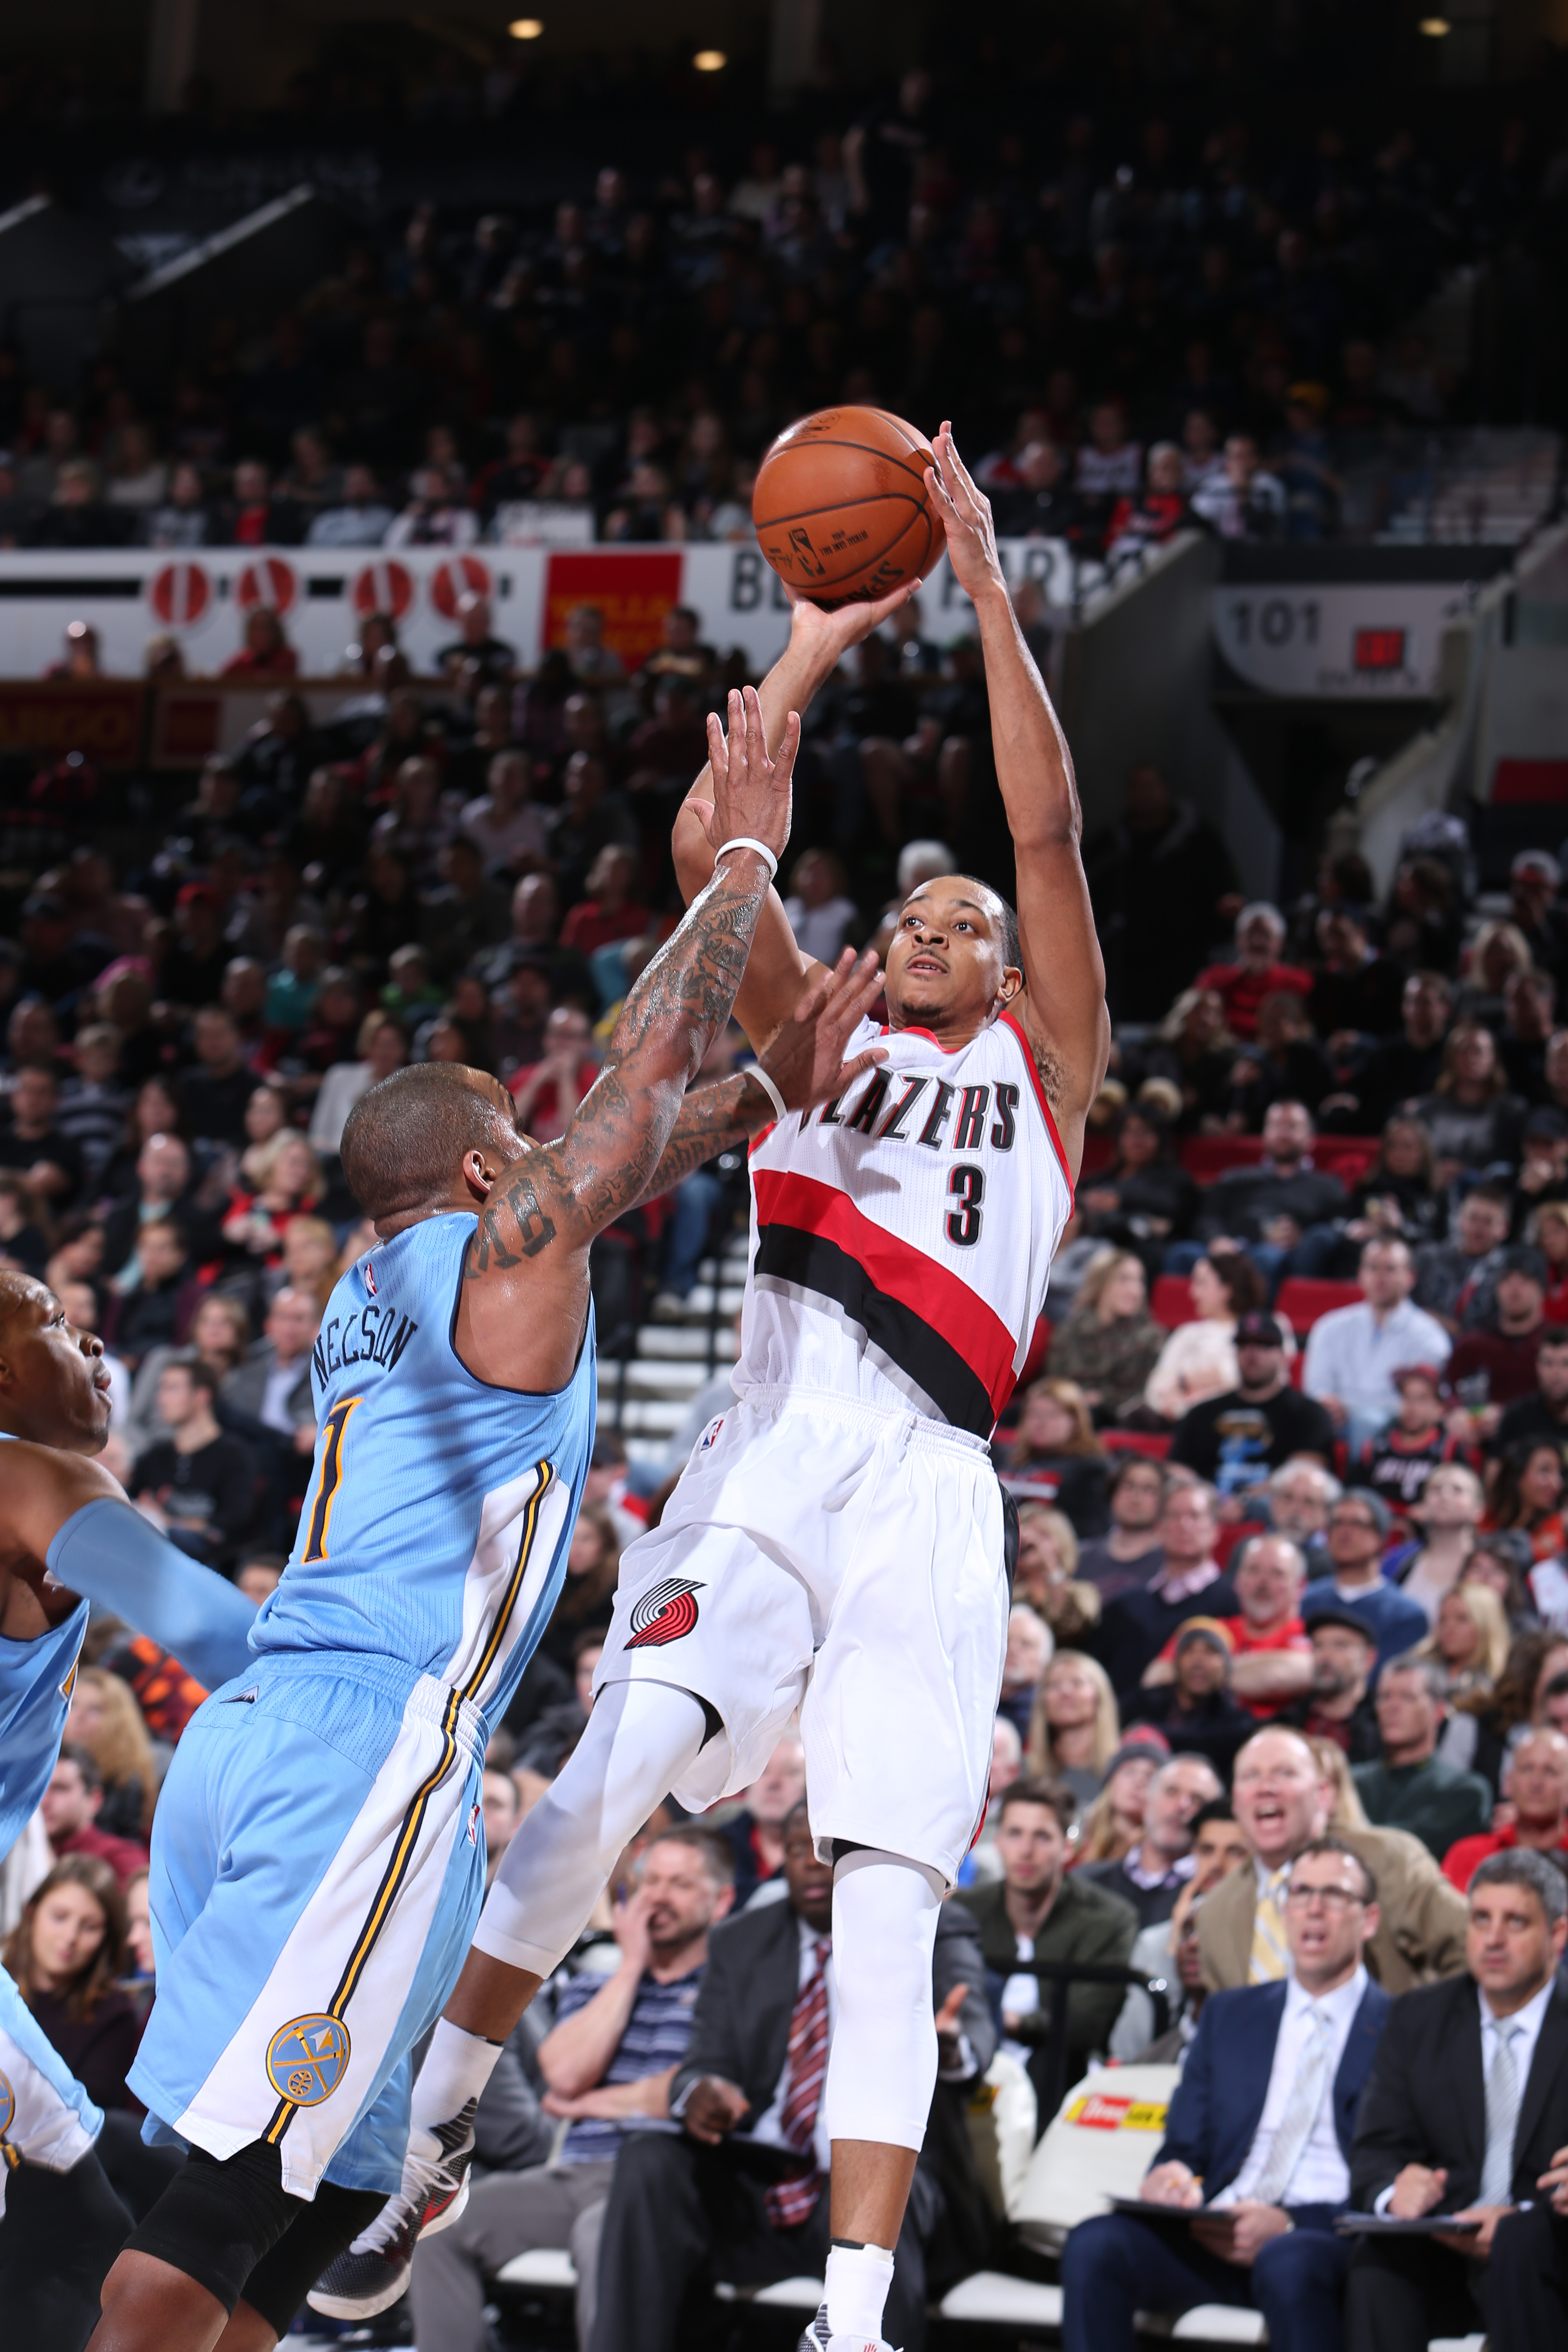 PORTLAND, OR - DECEMBER 30: C.J. McCollum #3 of the Portland Trail Blazers shoots the ball against the Denver Nuggets on December 30, 2015 at the Moda Center in Portland, Oregon. (Photo by Sam Forencich/NBAE via Getty Images)